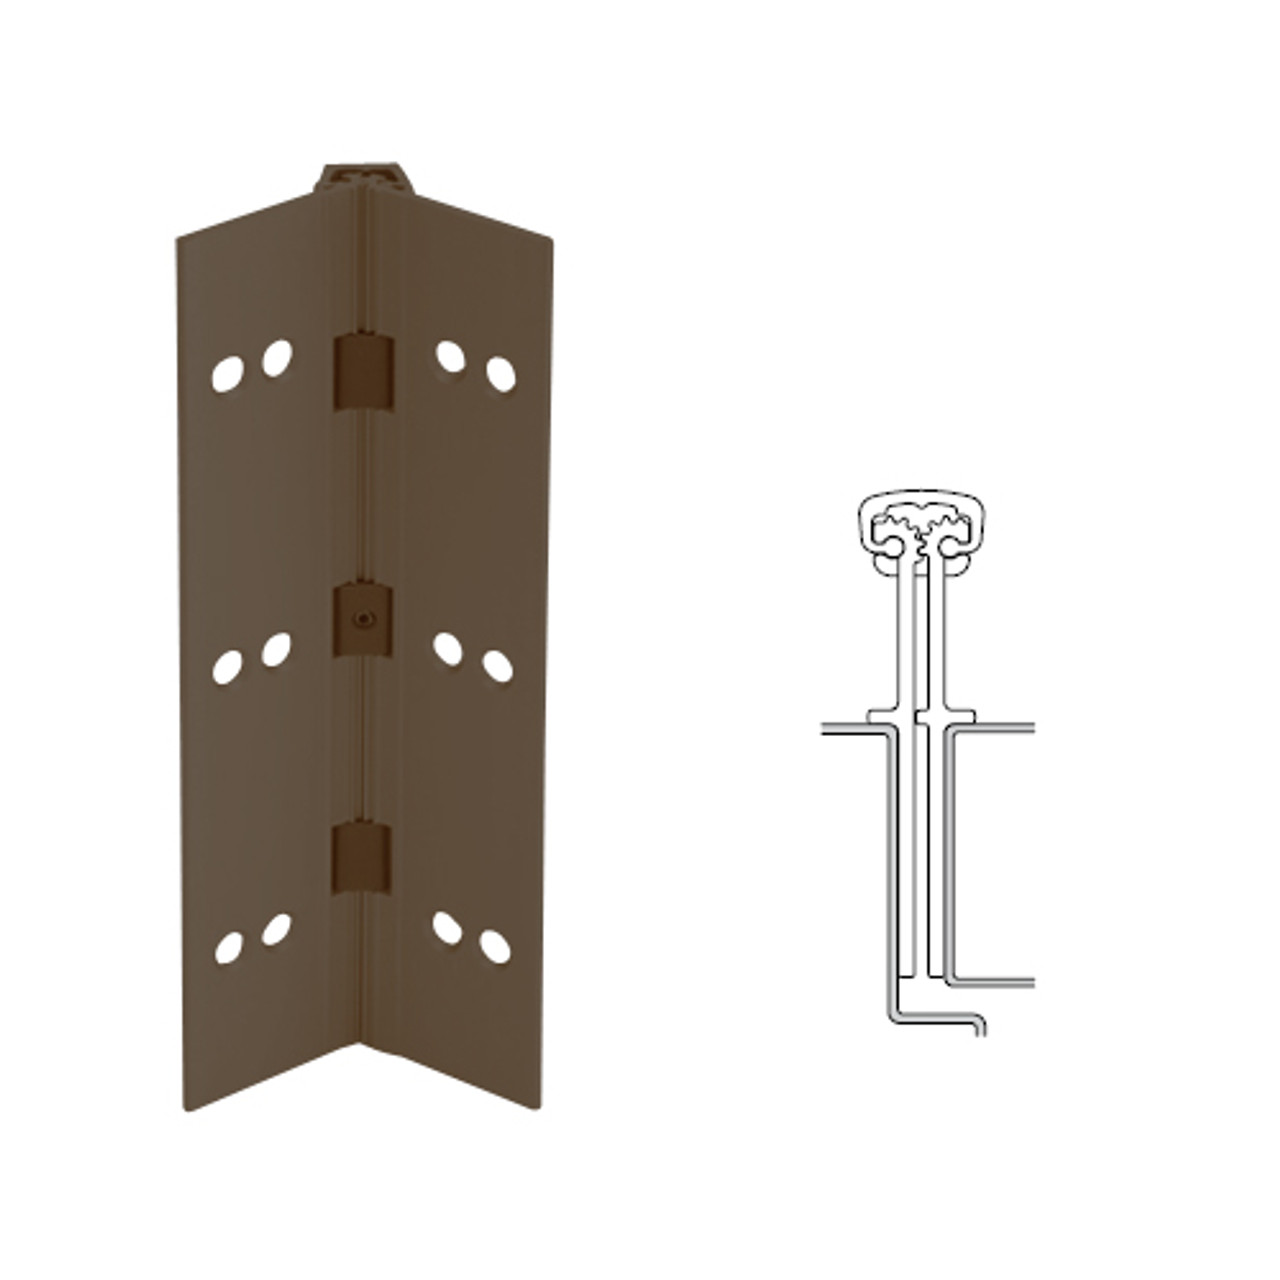 040XY-313AN-120 IVES Full Mortise Continuous Geared Hinges in Dark Bronze Anodized